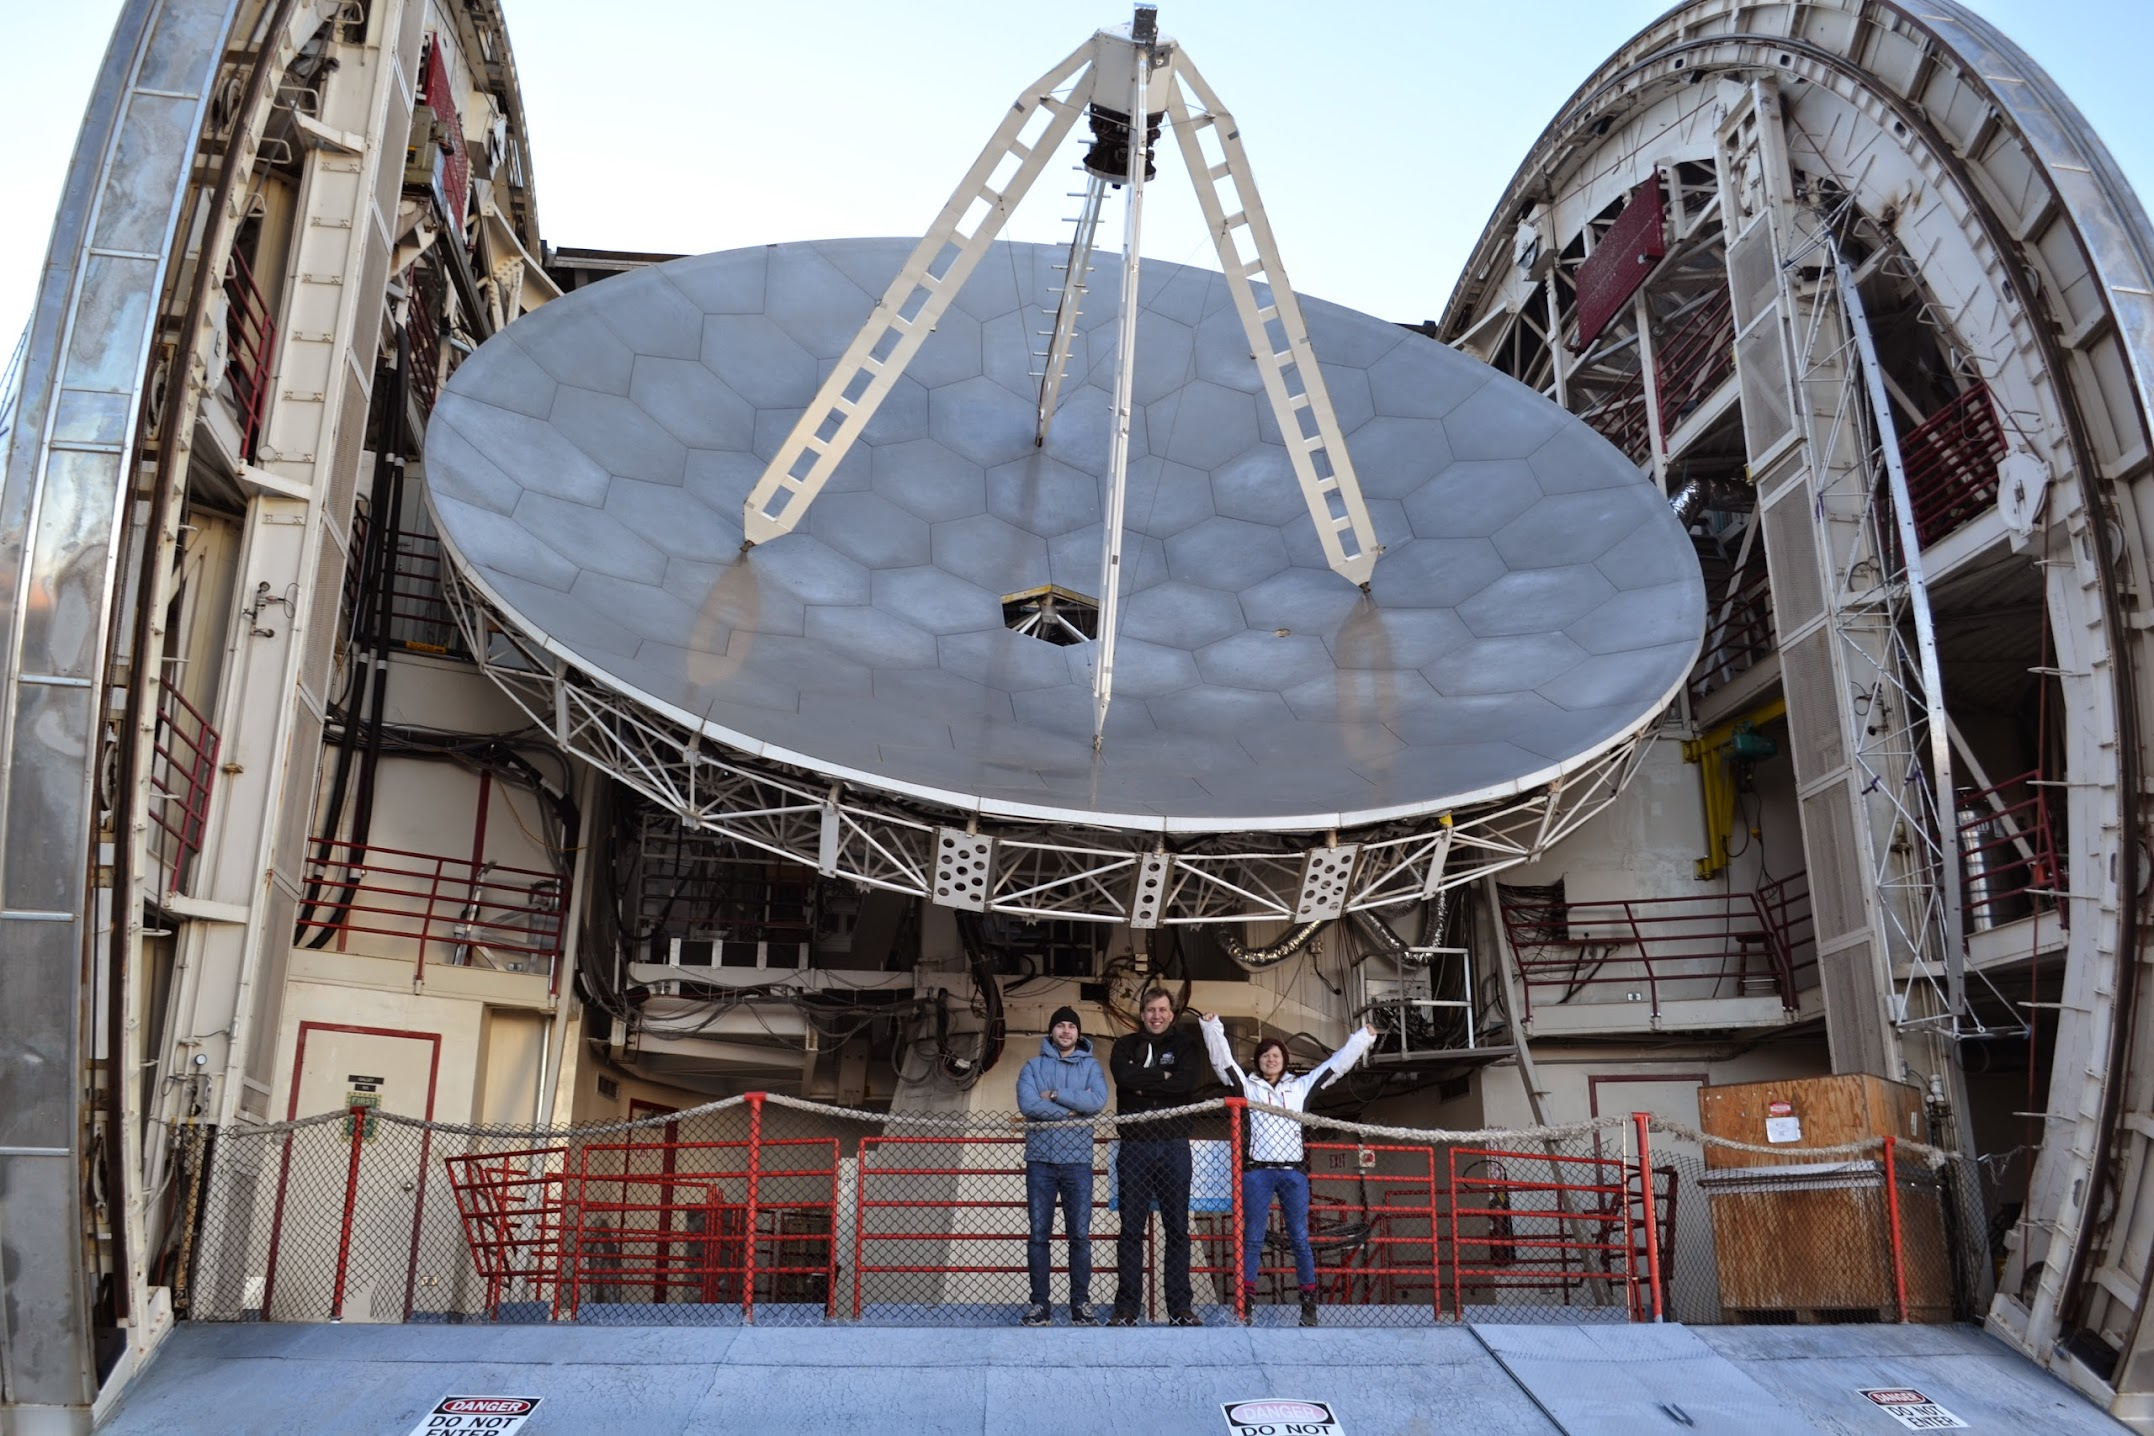 CSO dish with astronomers in front